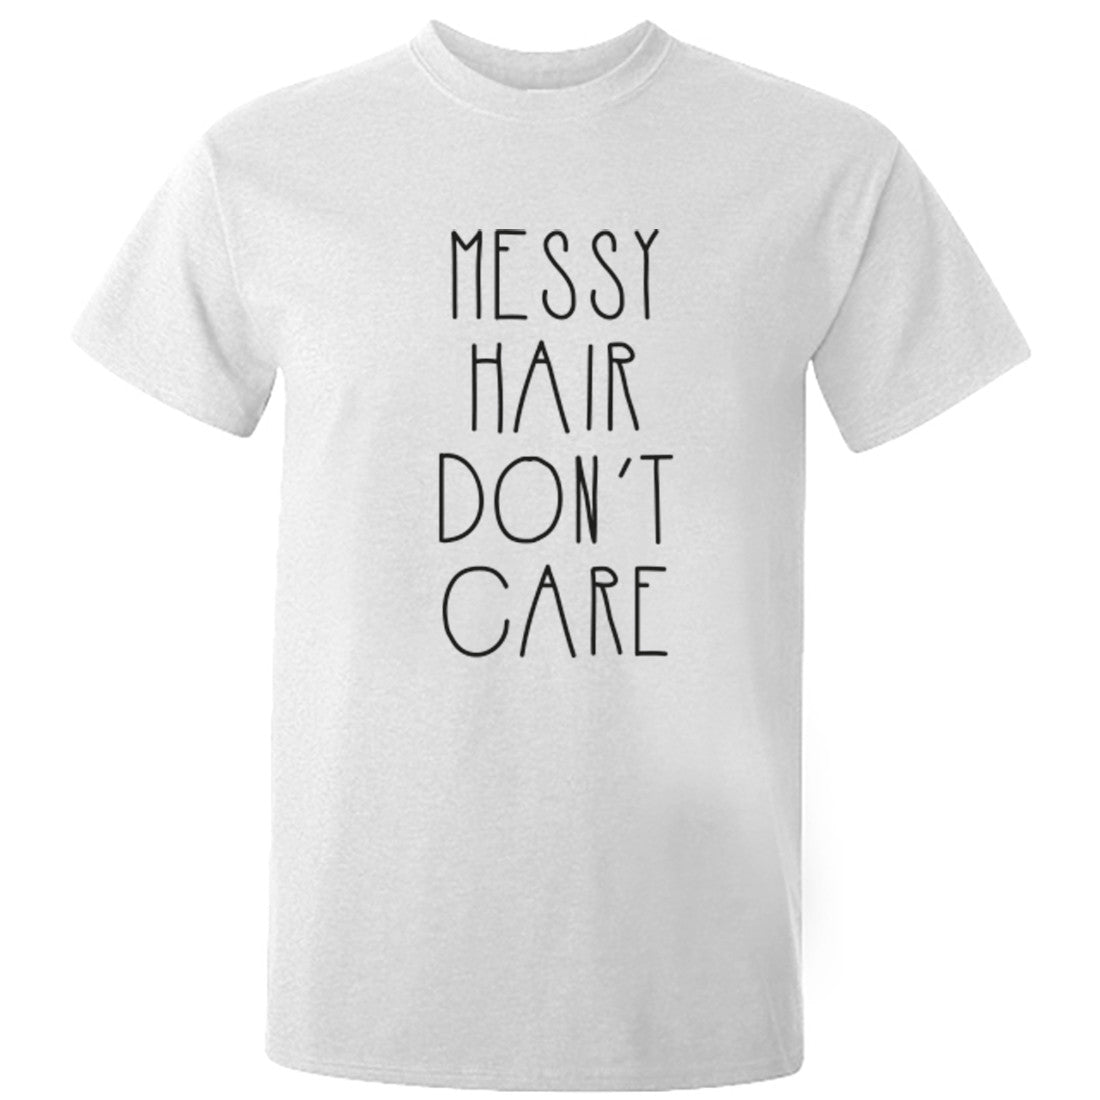 Messy Hair Don't Care Unisex Fit T-Shirt K0454